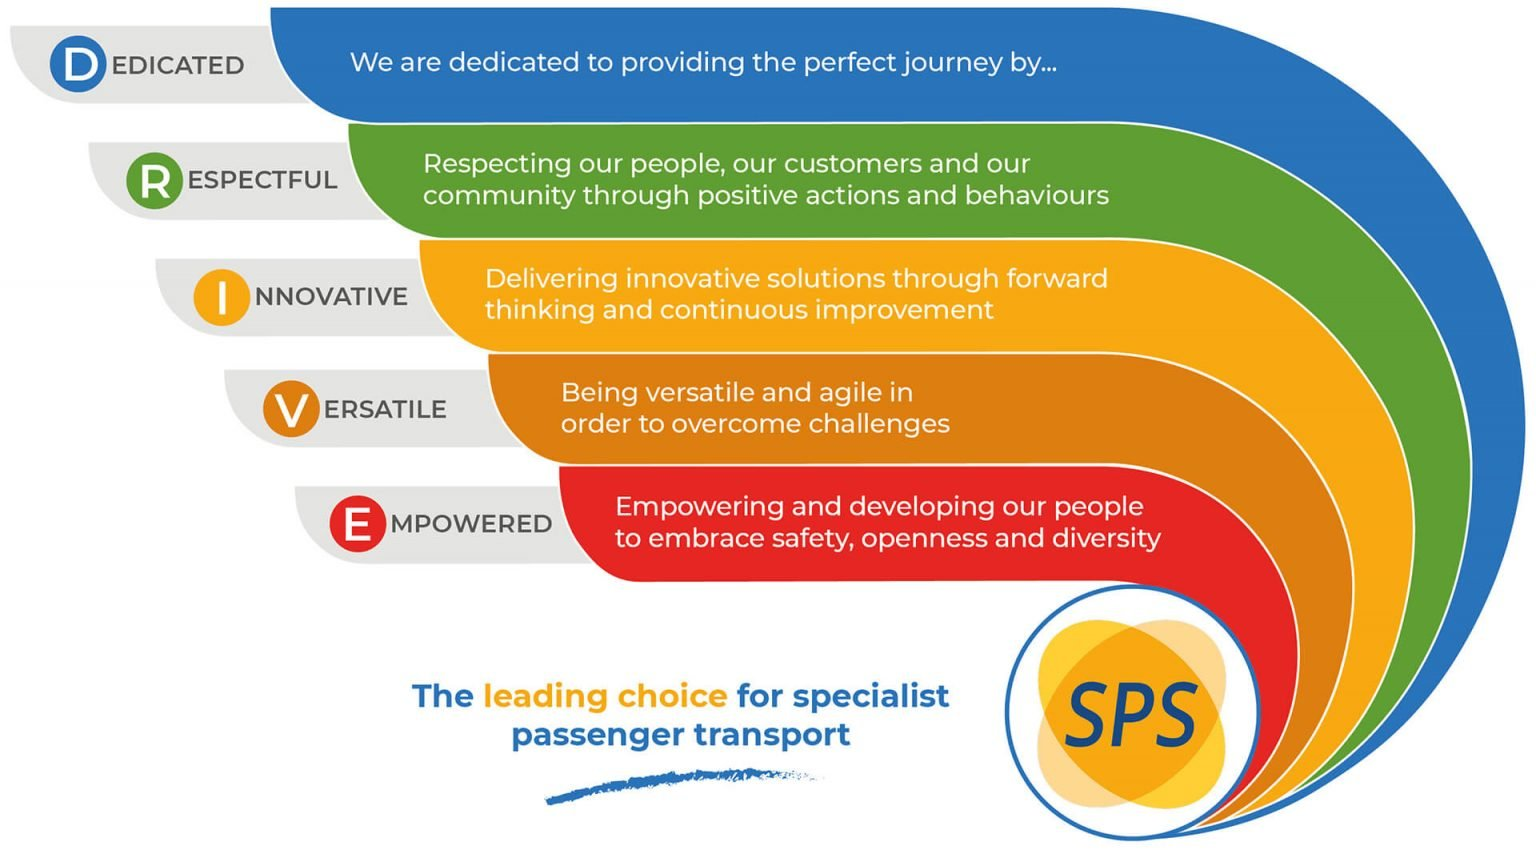 Somerset Passenger Solutions Visions & Values